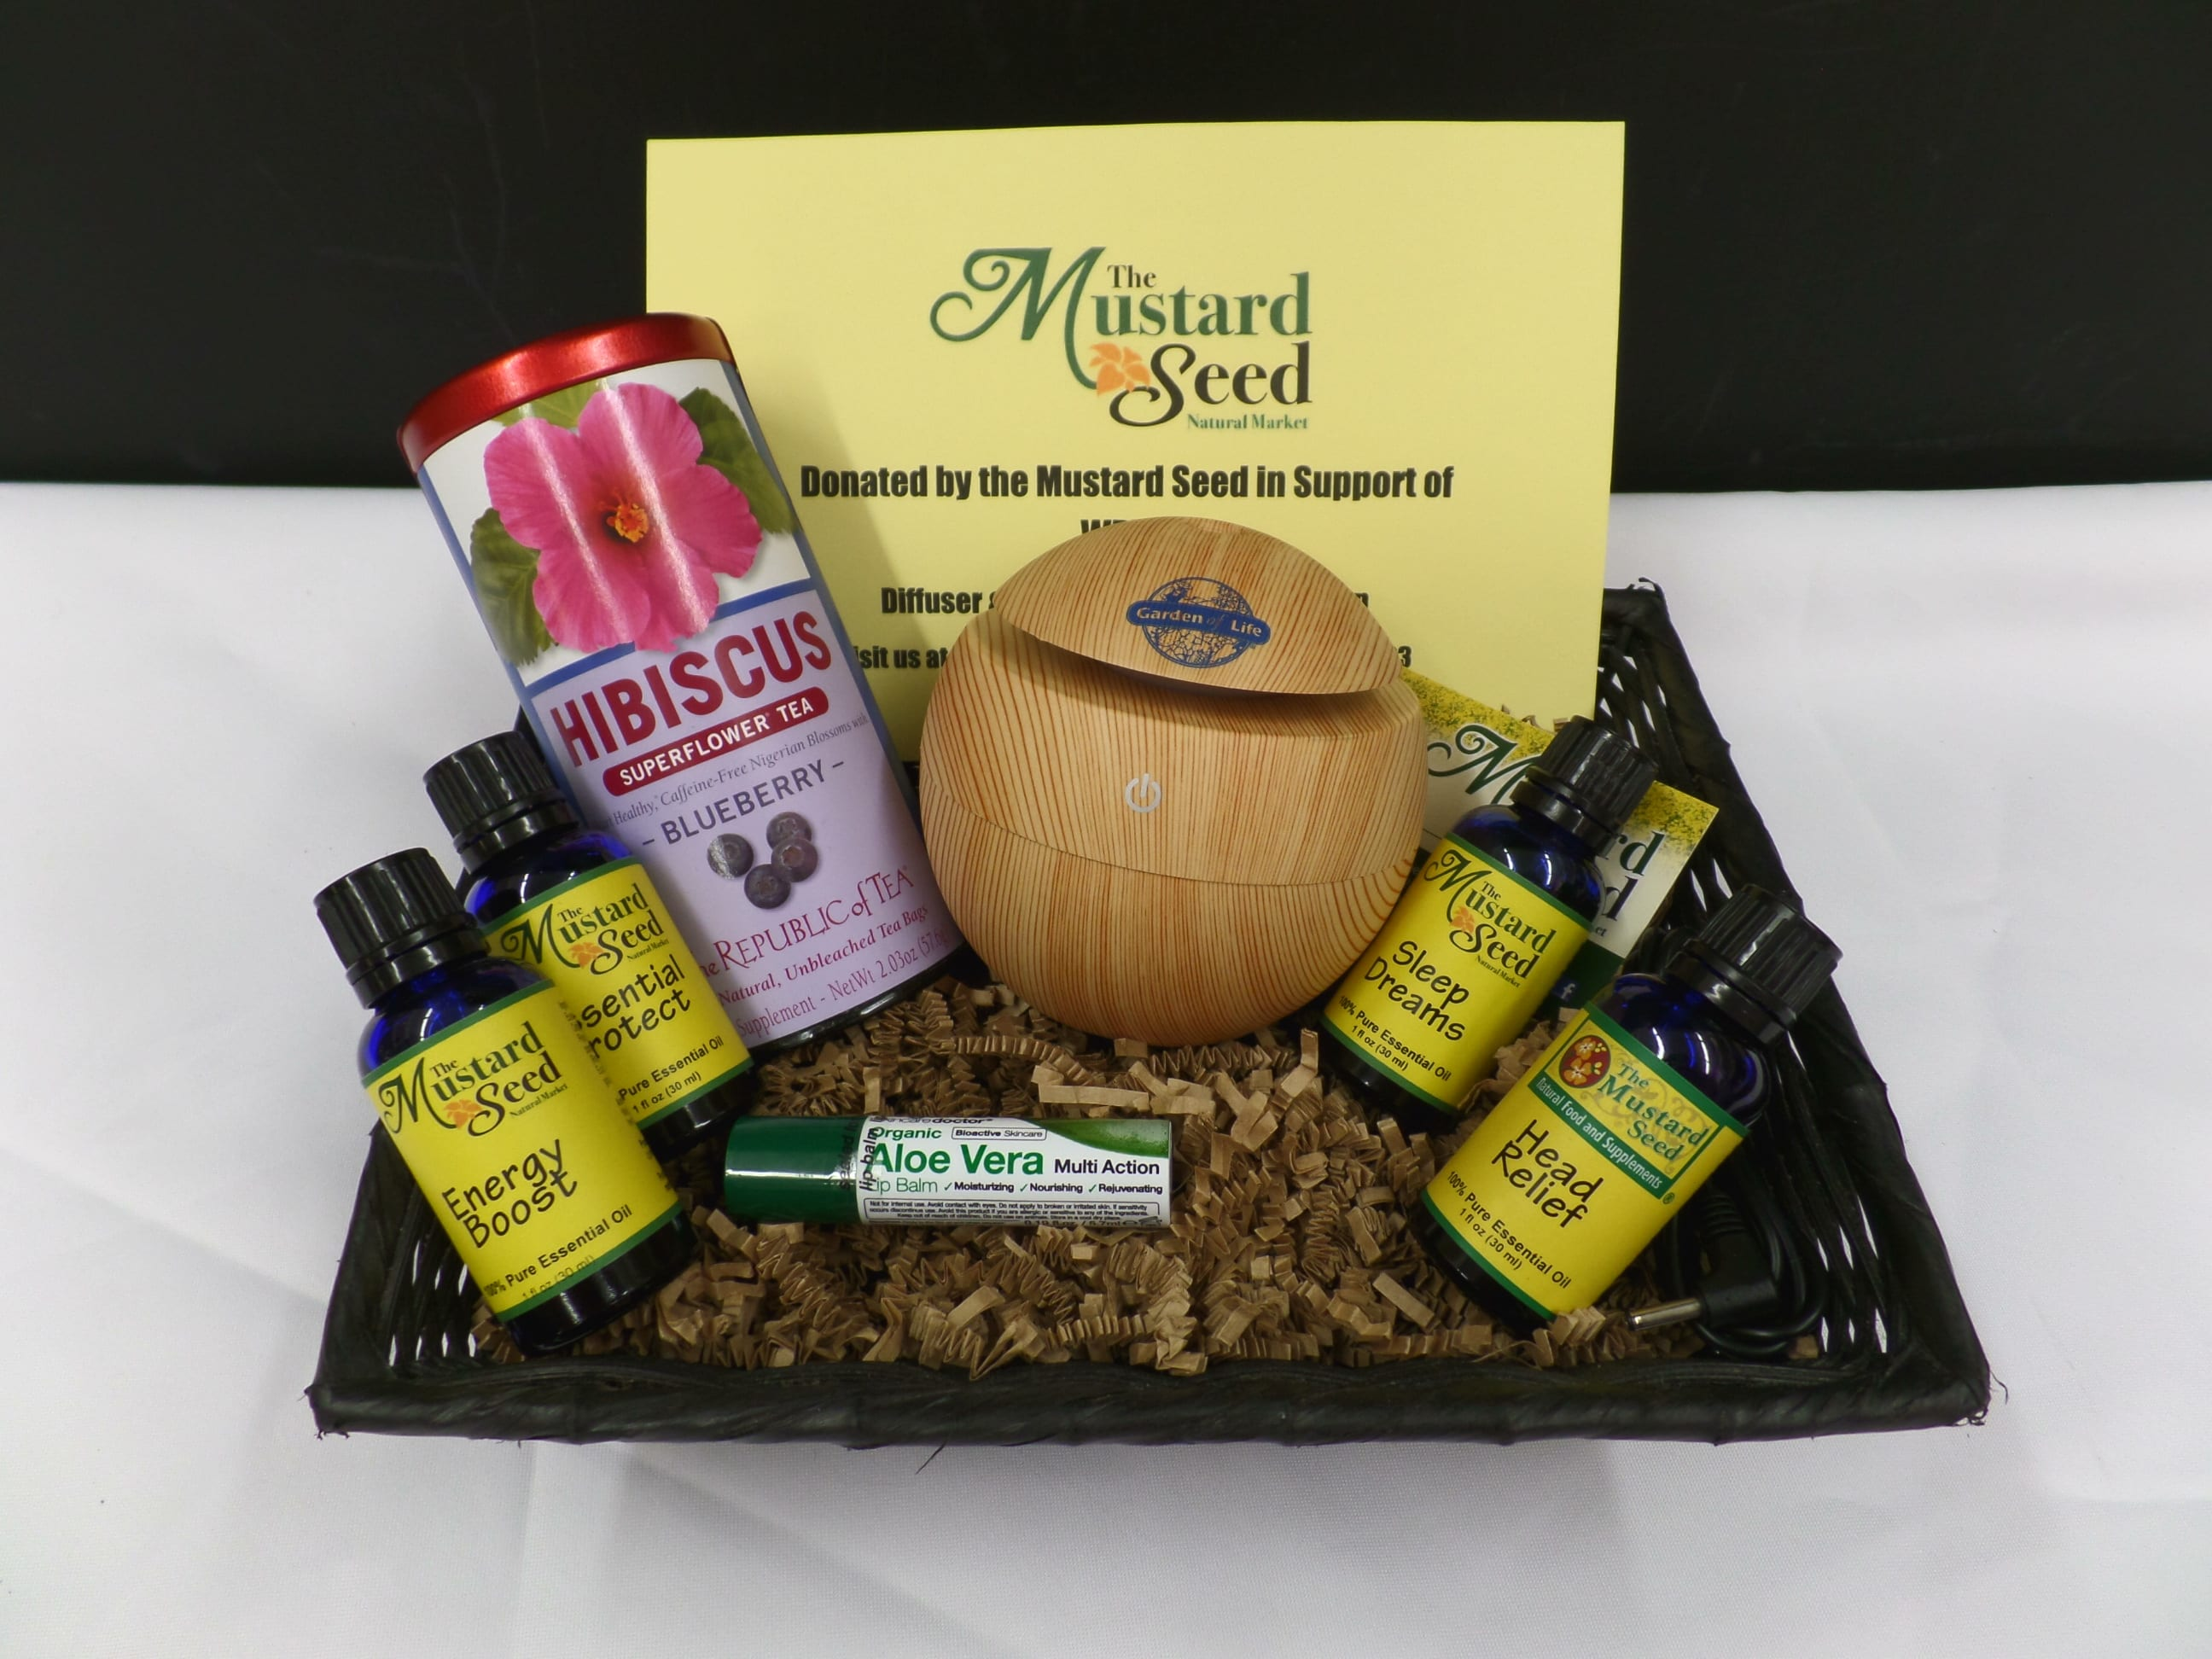 WELLNESS GIFT BASKET <br/> Donated by: THE MUSTARD SEED <br/> Valued at: $80